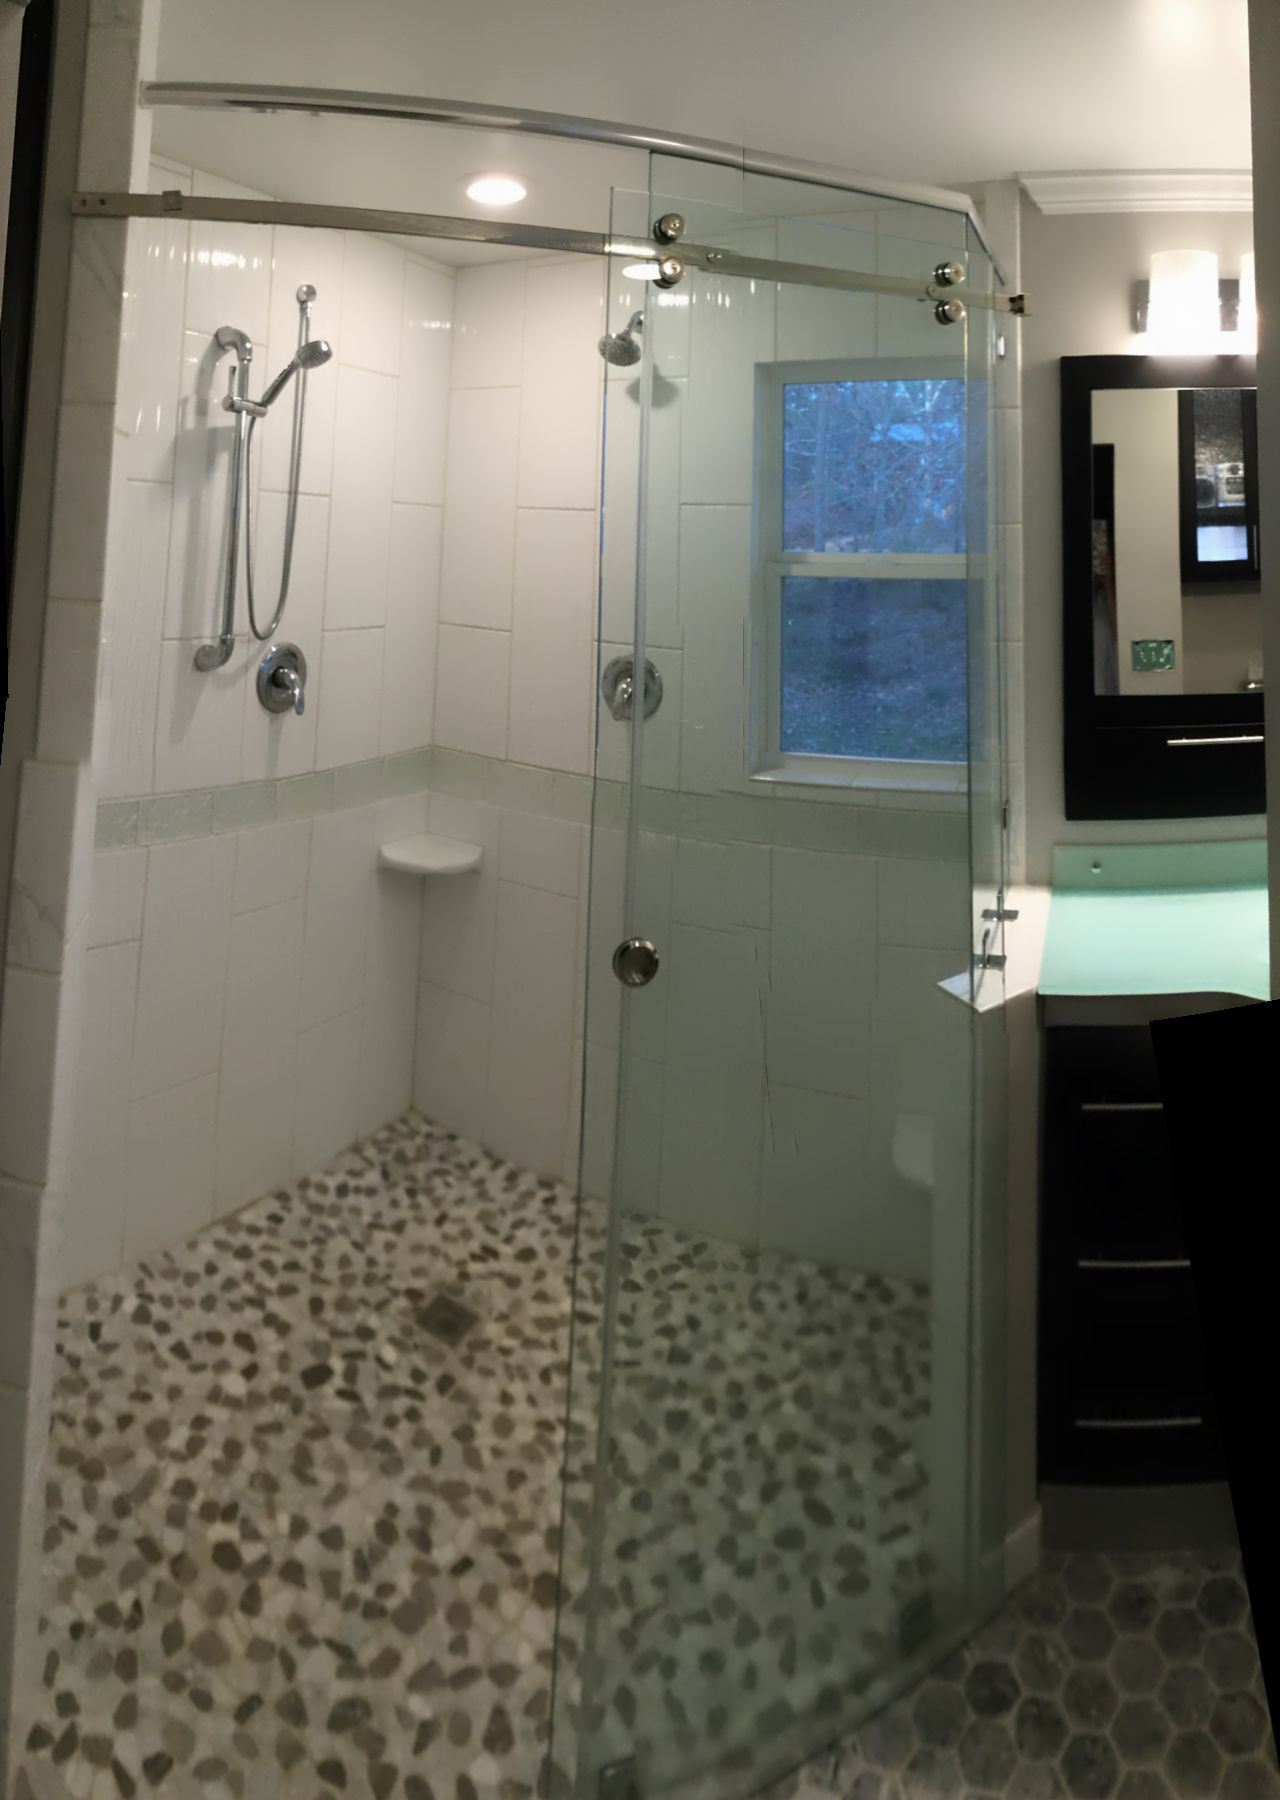 Small bath remodel created diagonal shower for huge effect